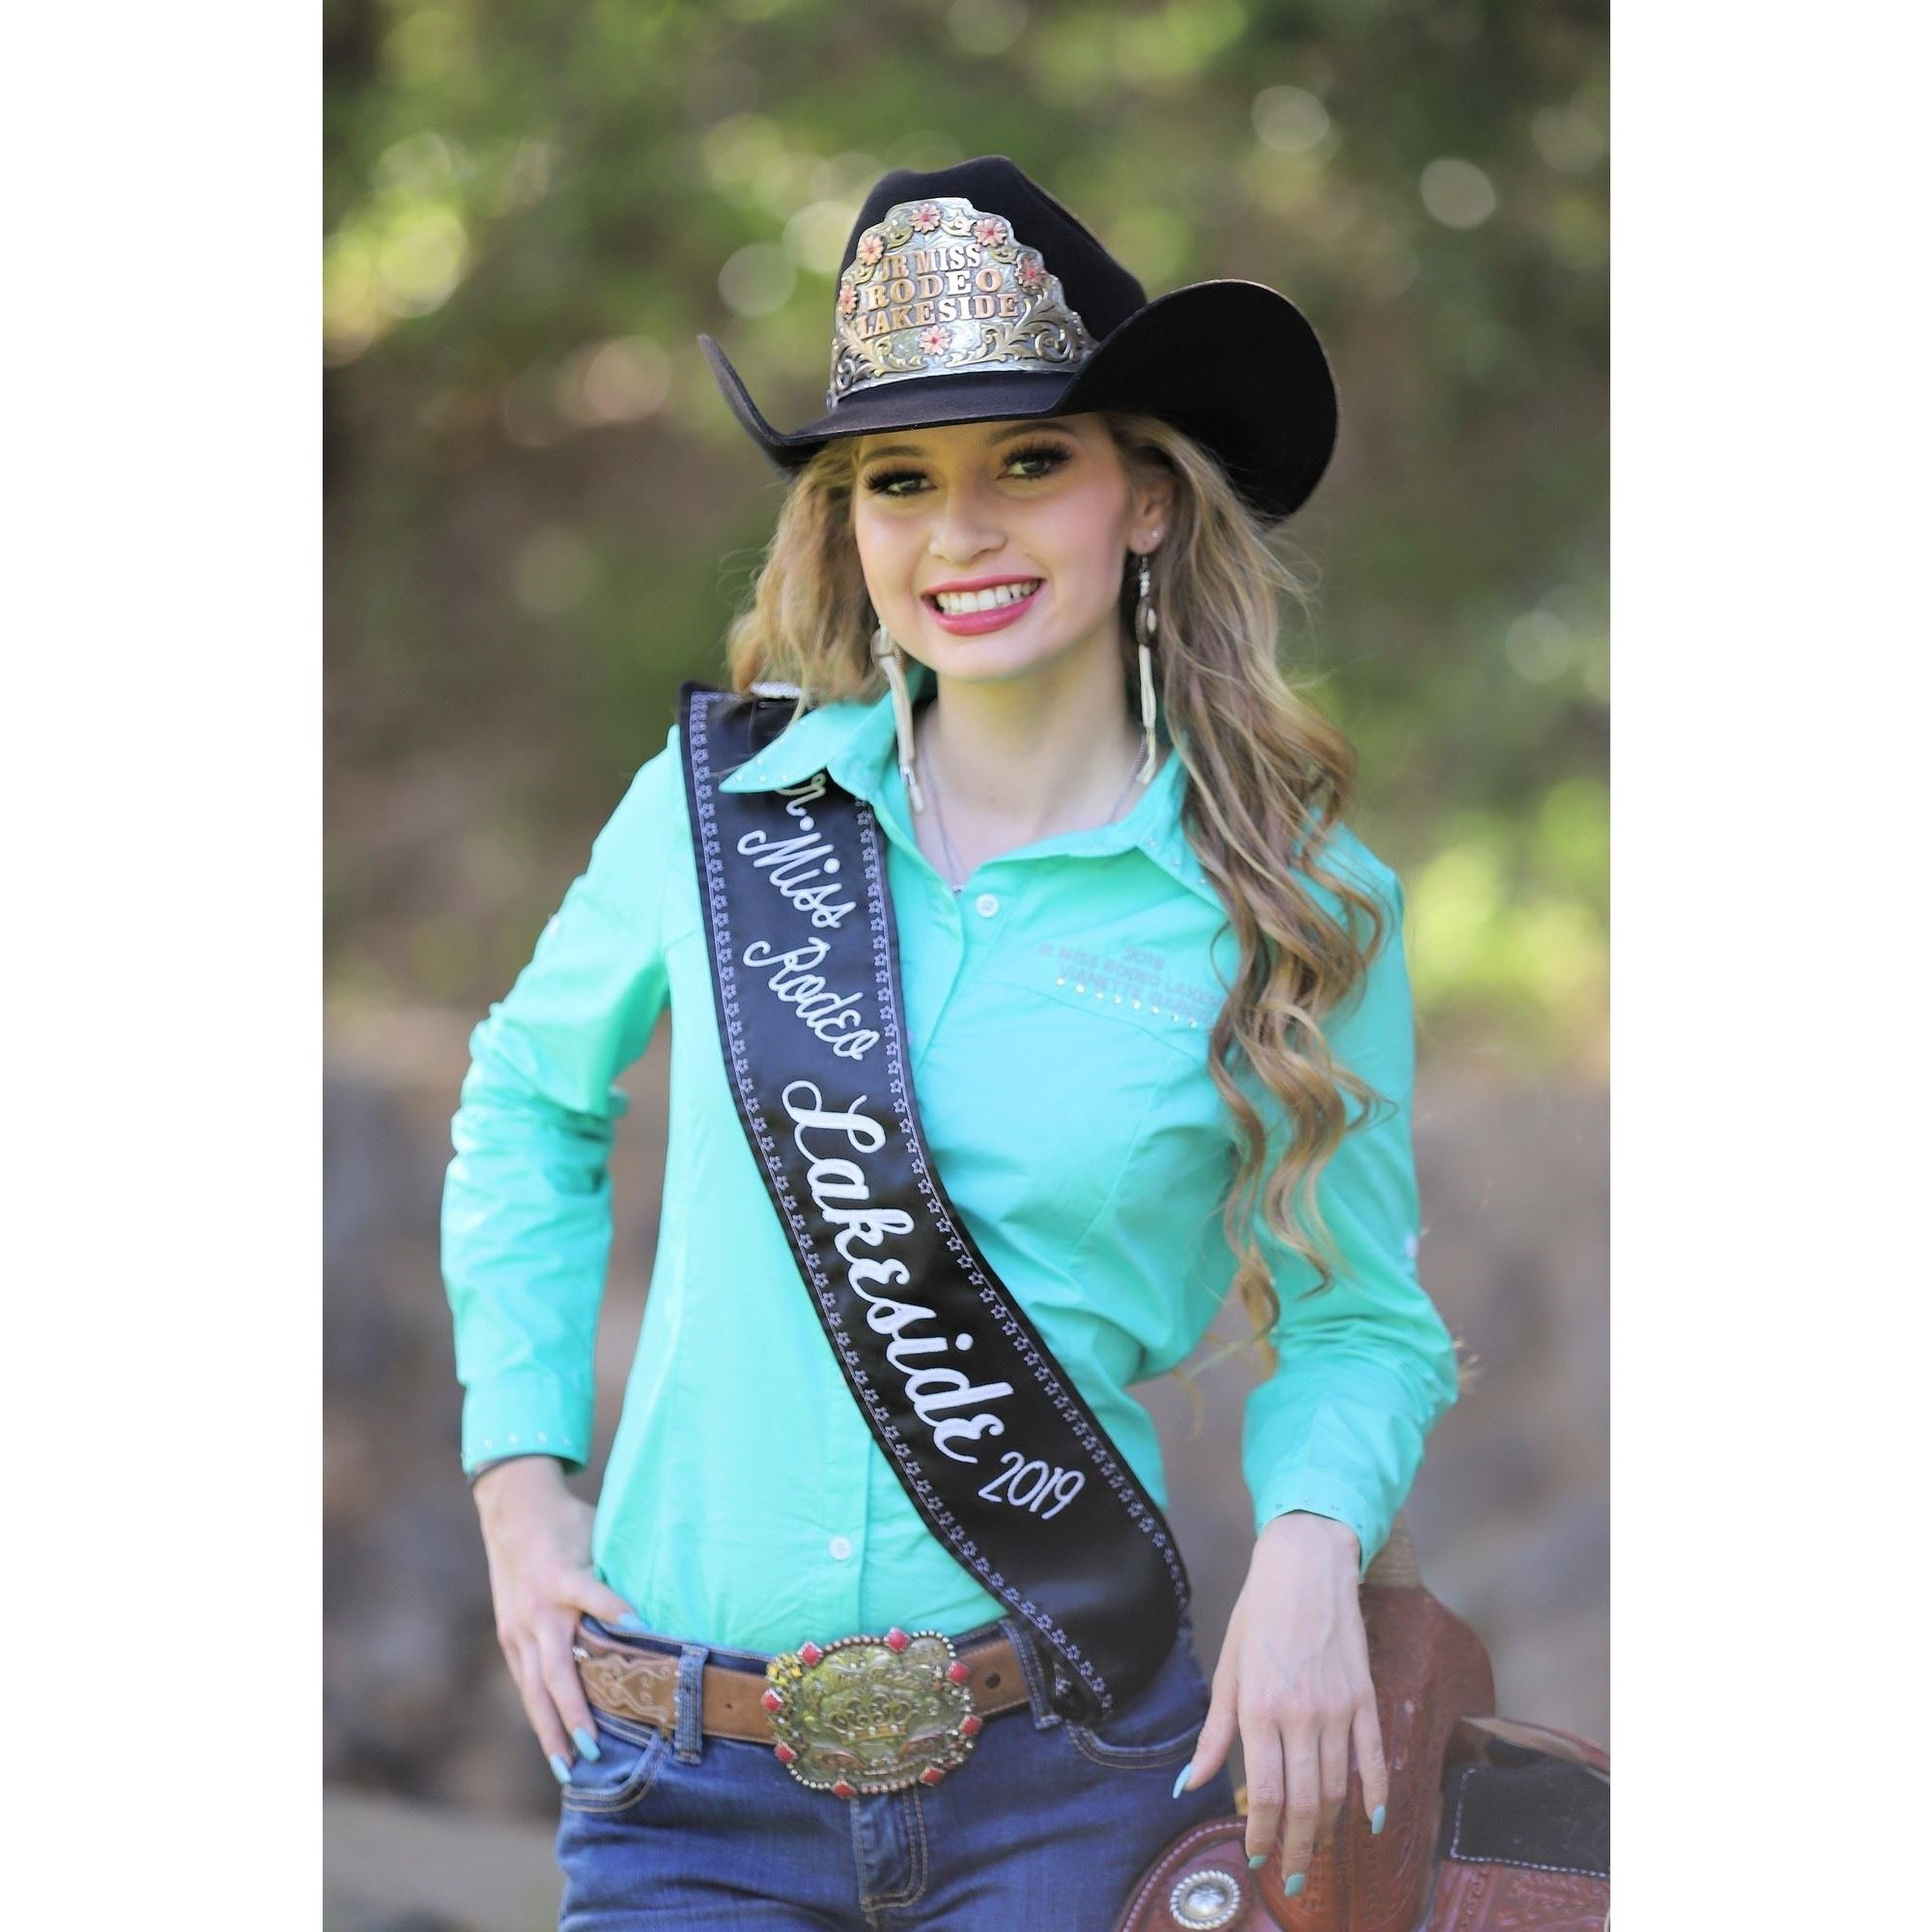 Jr Miss Rodeo Lakeside 2019 Vianette Garcia